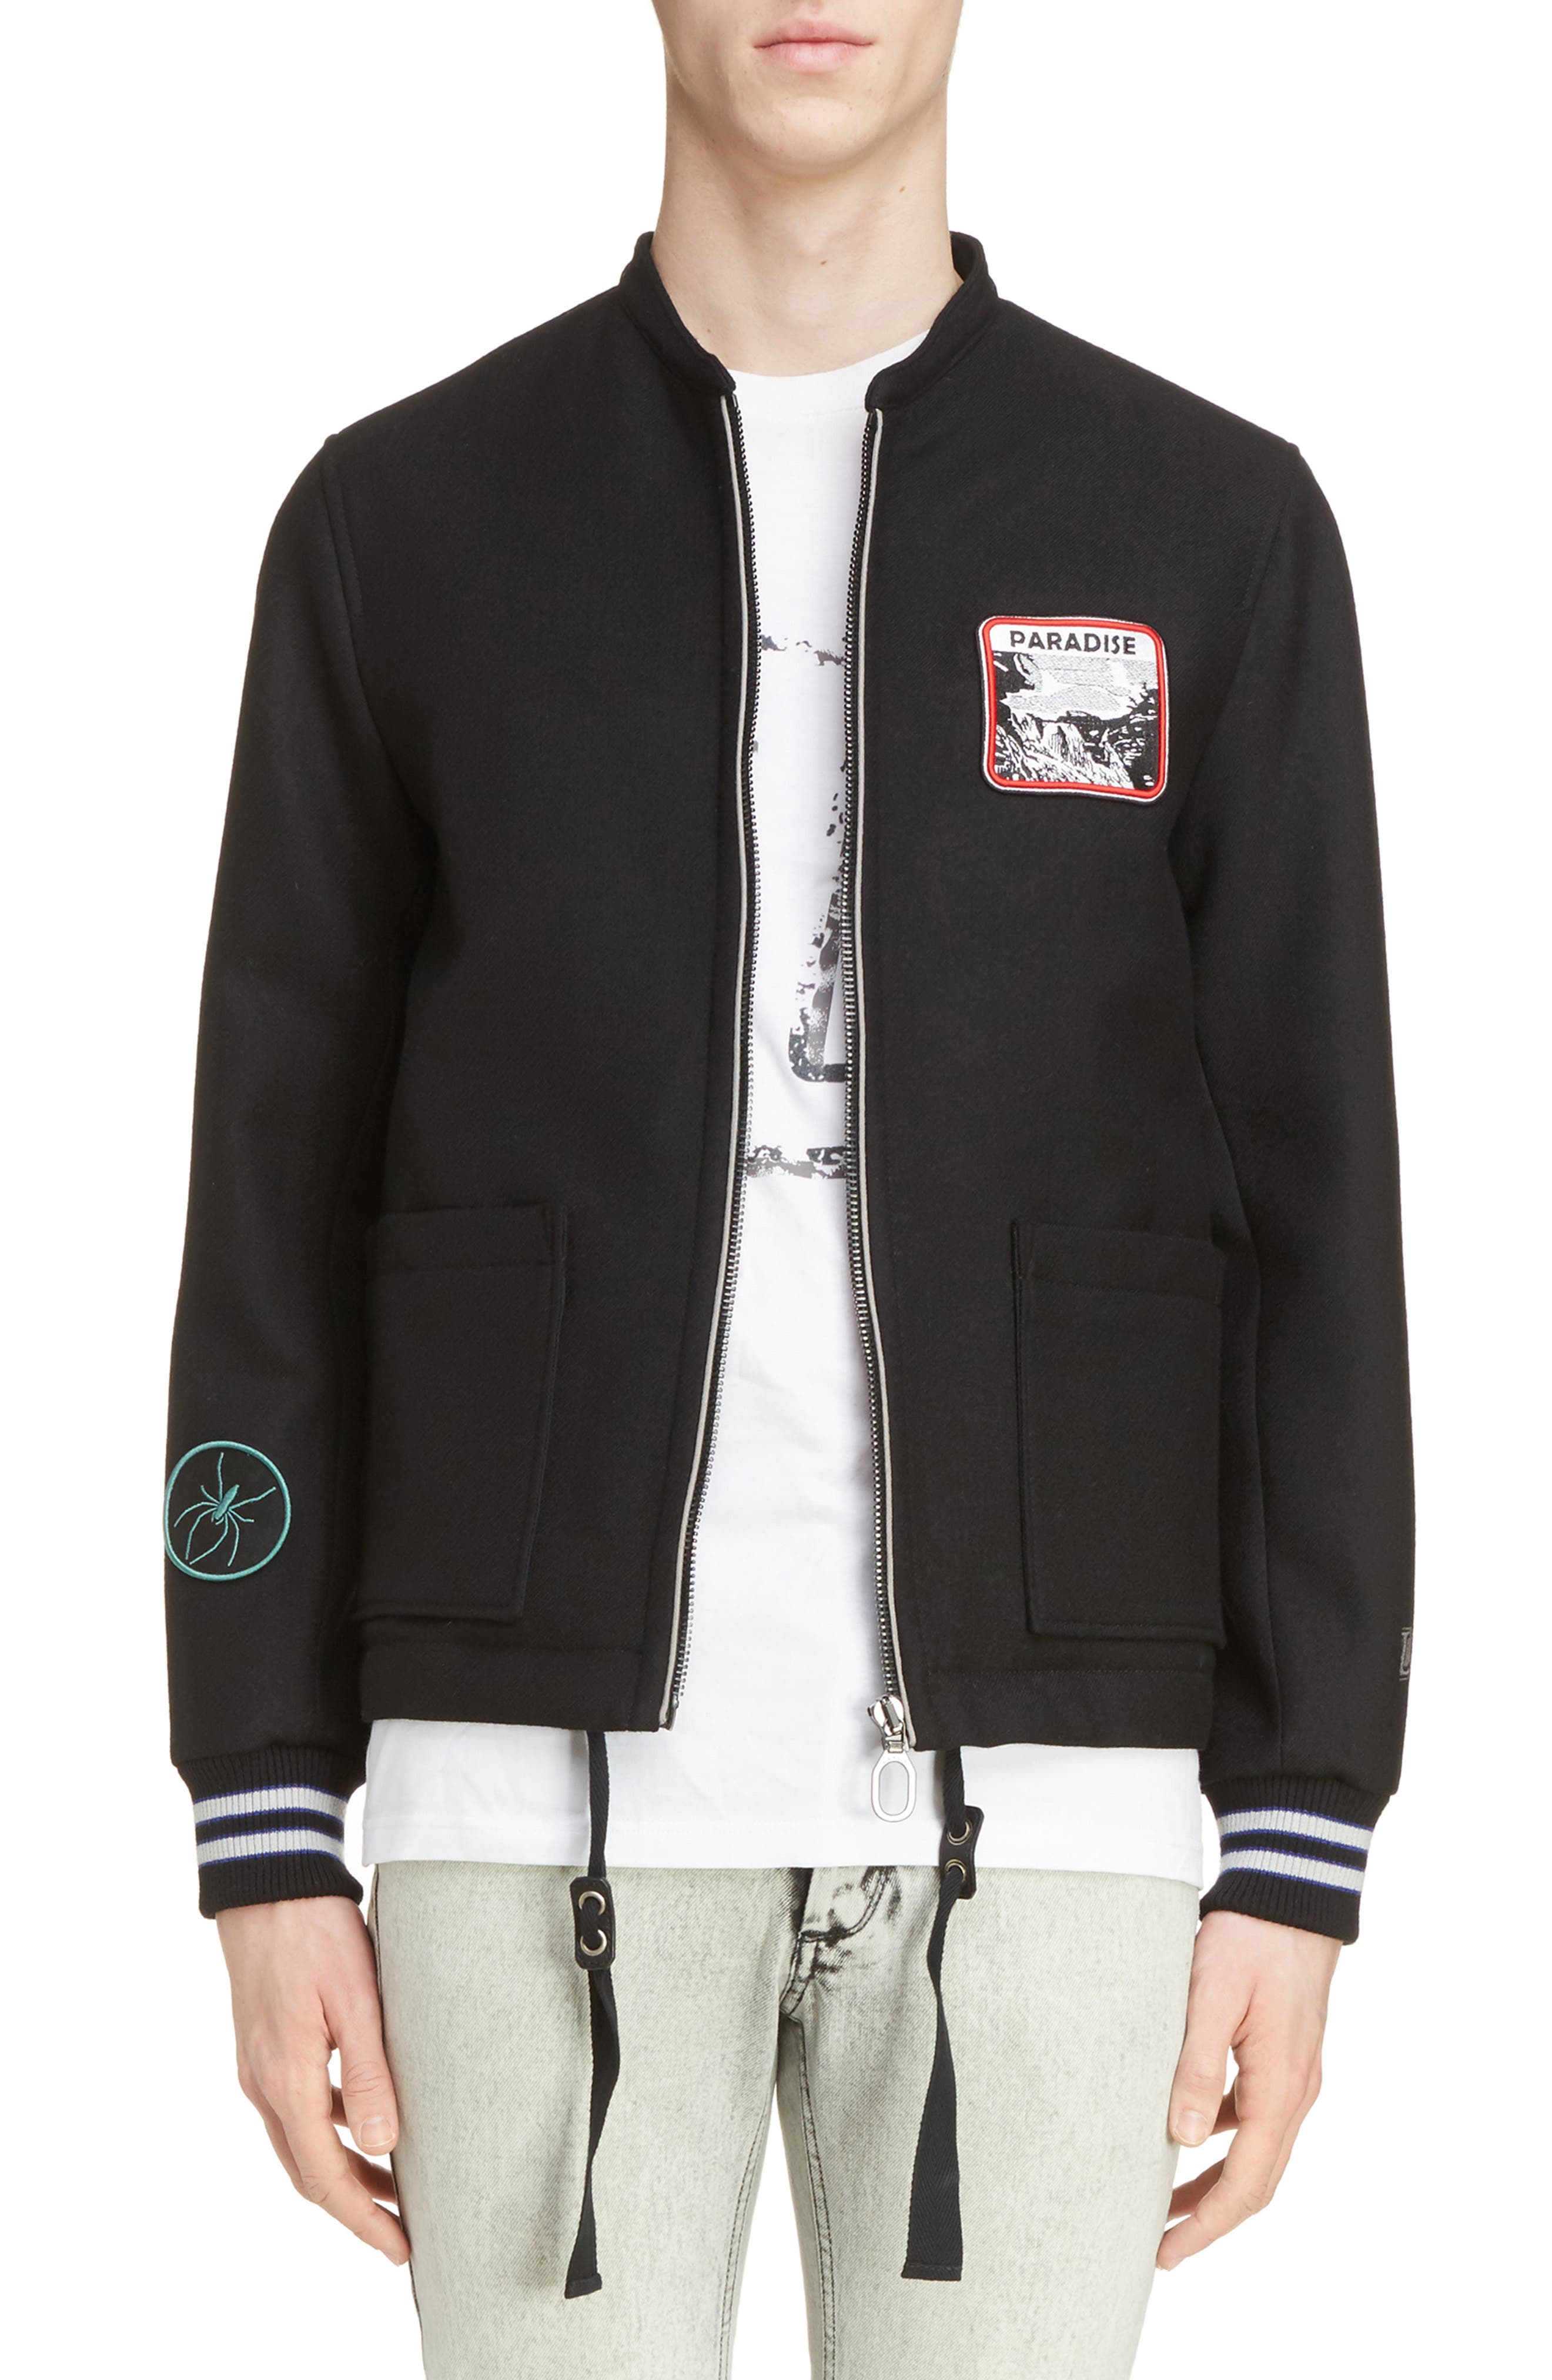 Alternate Image 1 Selected - Lanvin Paradise Patch Bomber Jacket